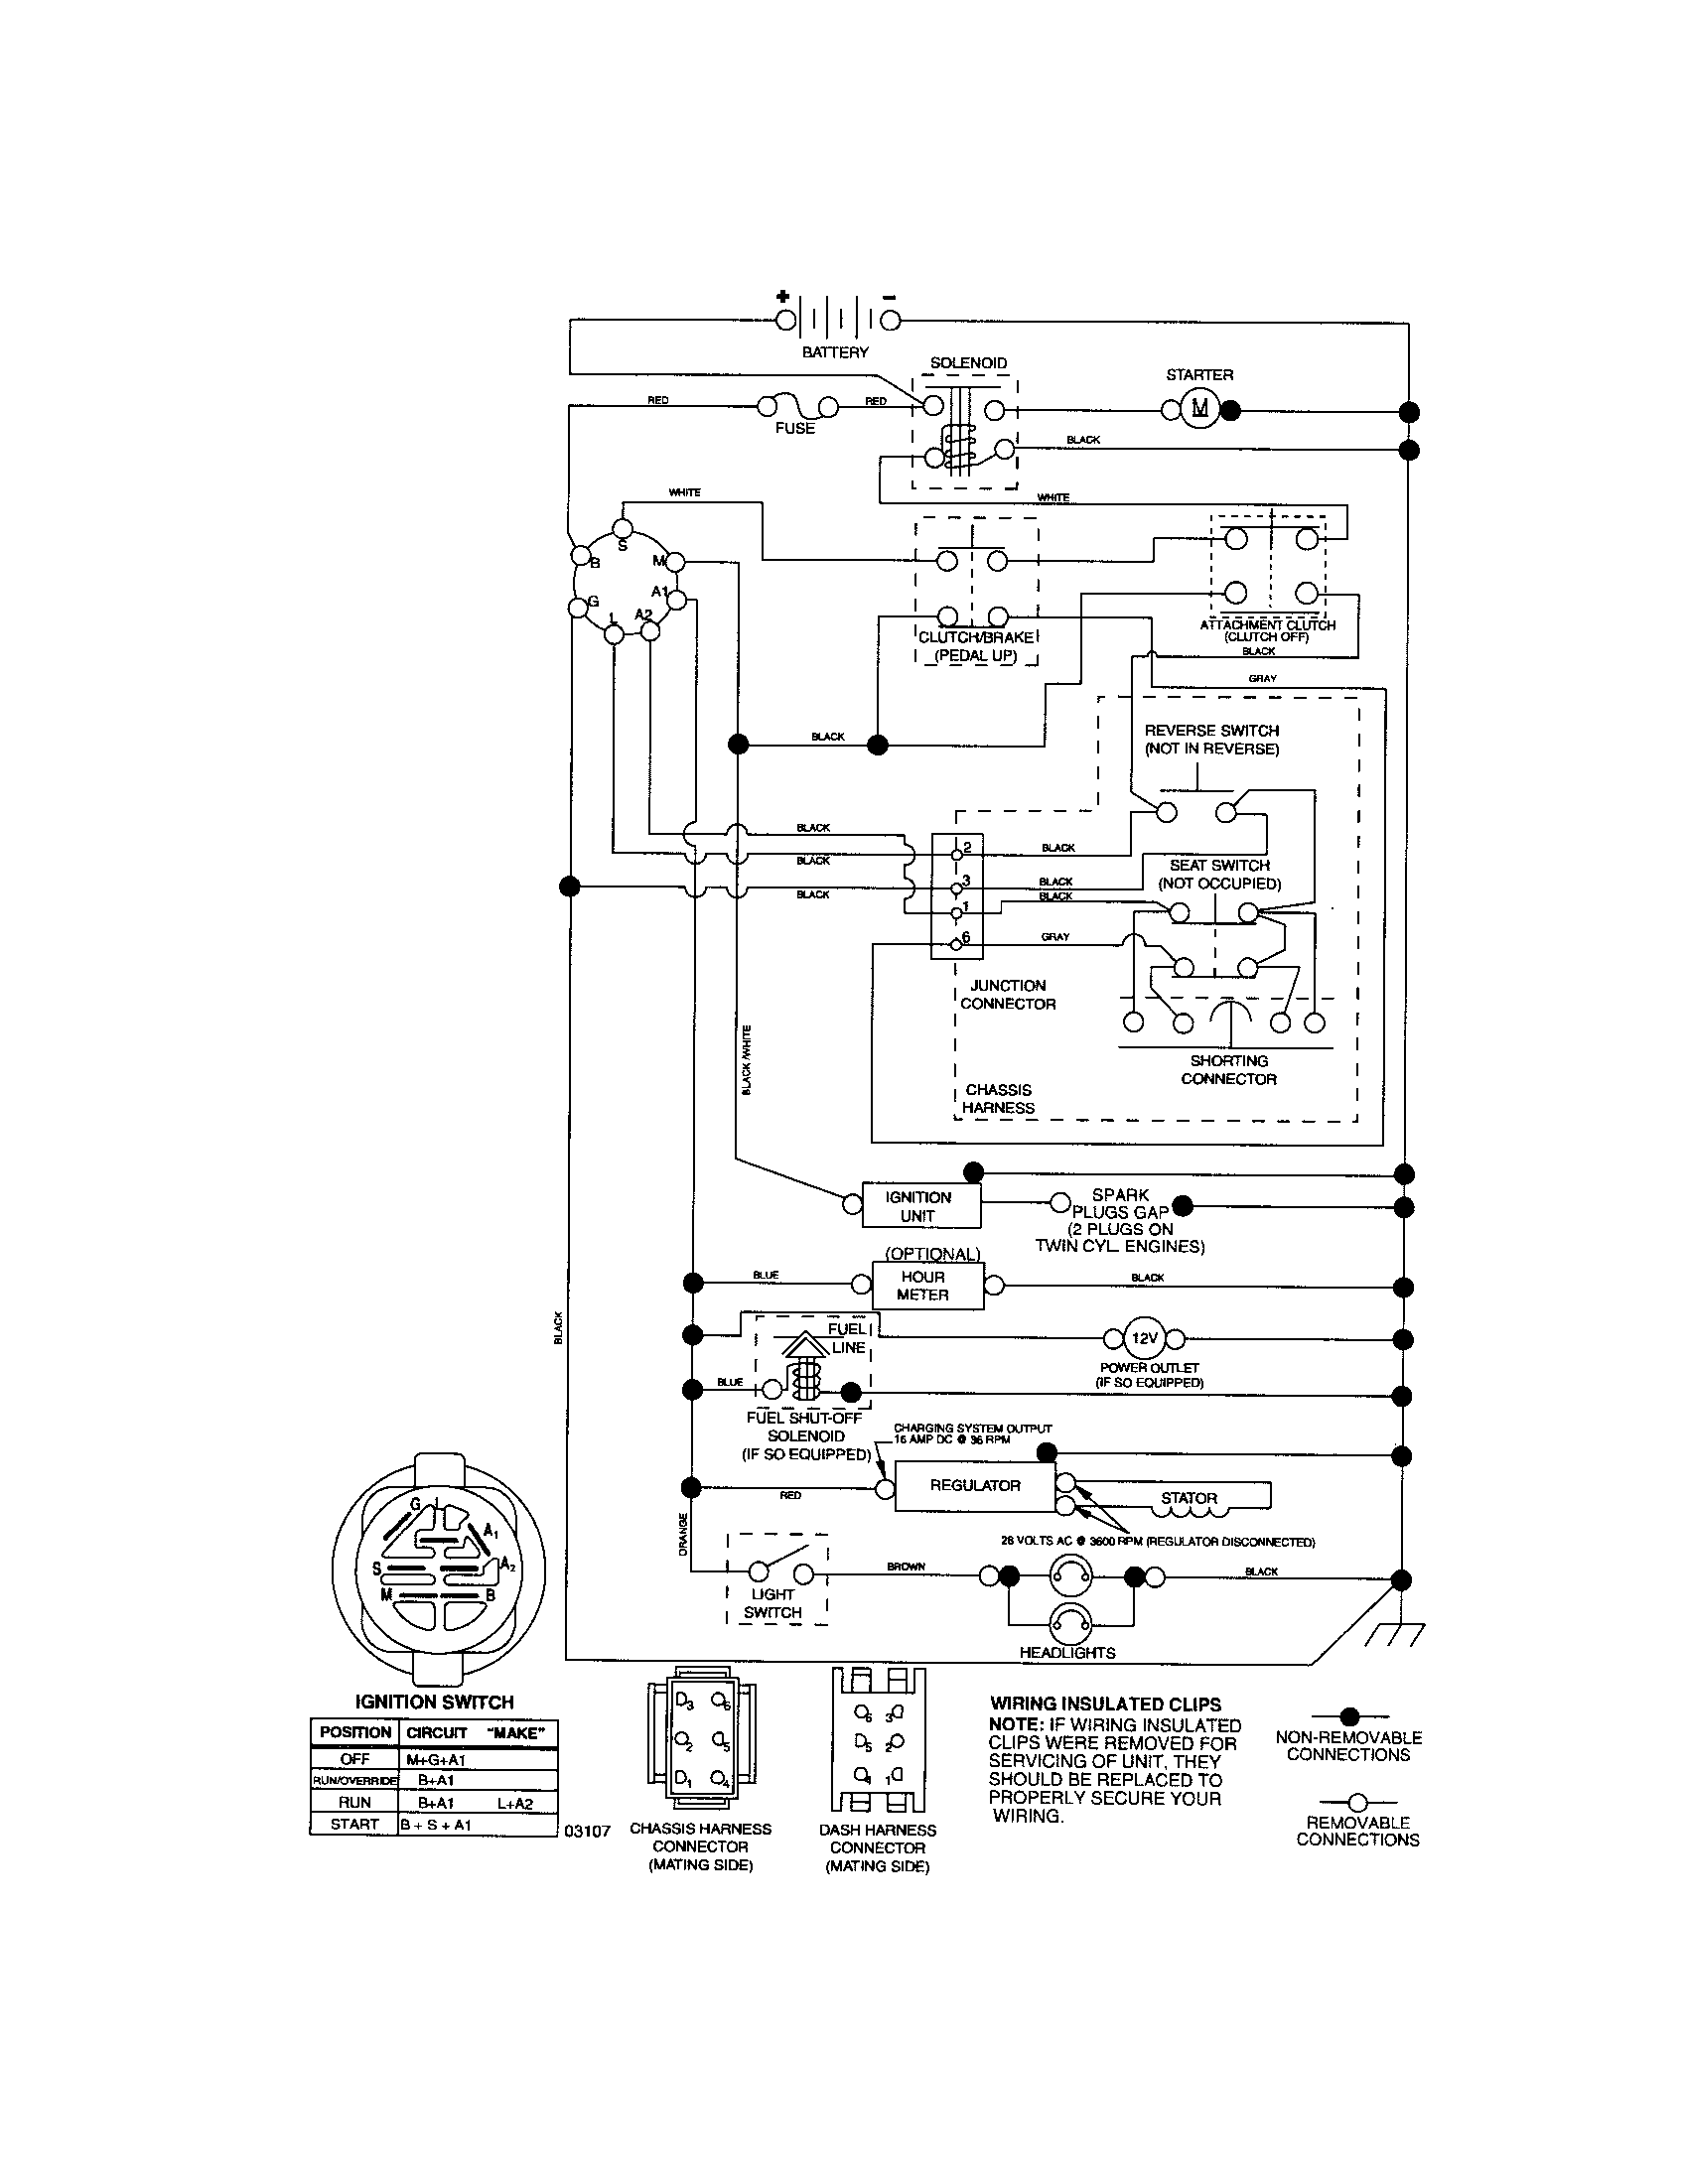 6af5f1447fd13c8443376822ddc1e105 craftsman riding mower electrical diagram wiring diagram murray lawn mower wiring diagram at bakdesigns.co